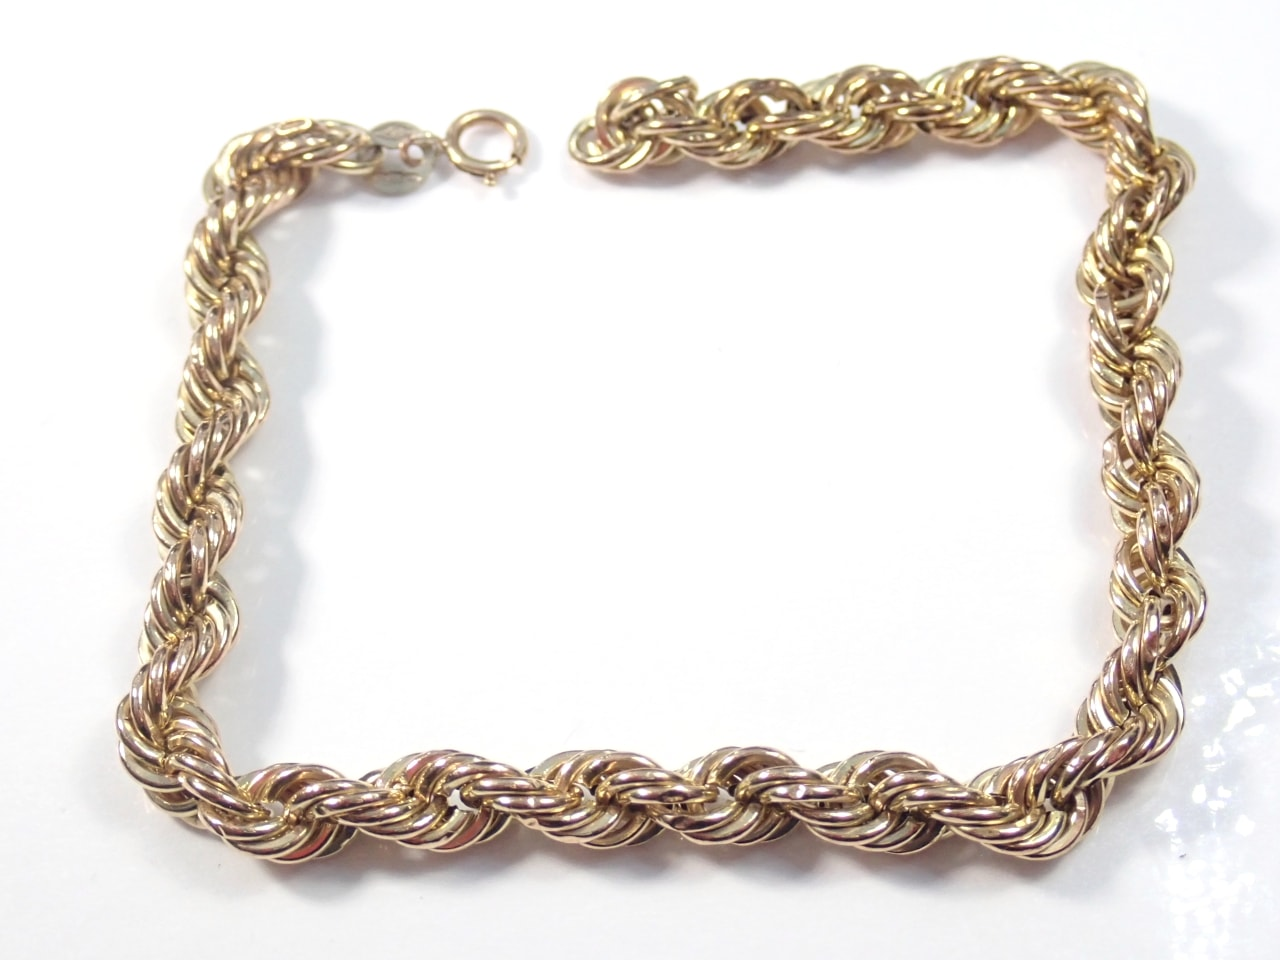 Cuban Rope Chain 9ct Gold 7 inches 2.8 grams